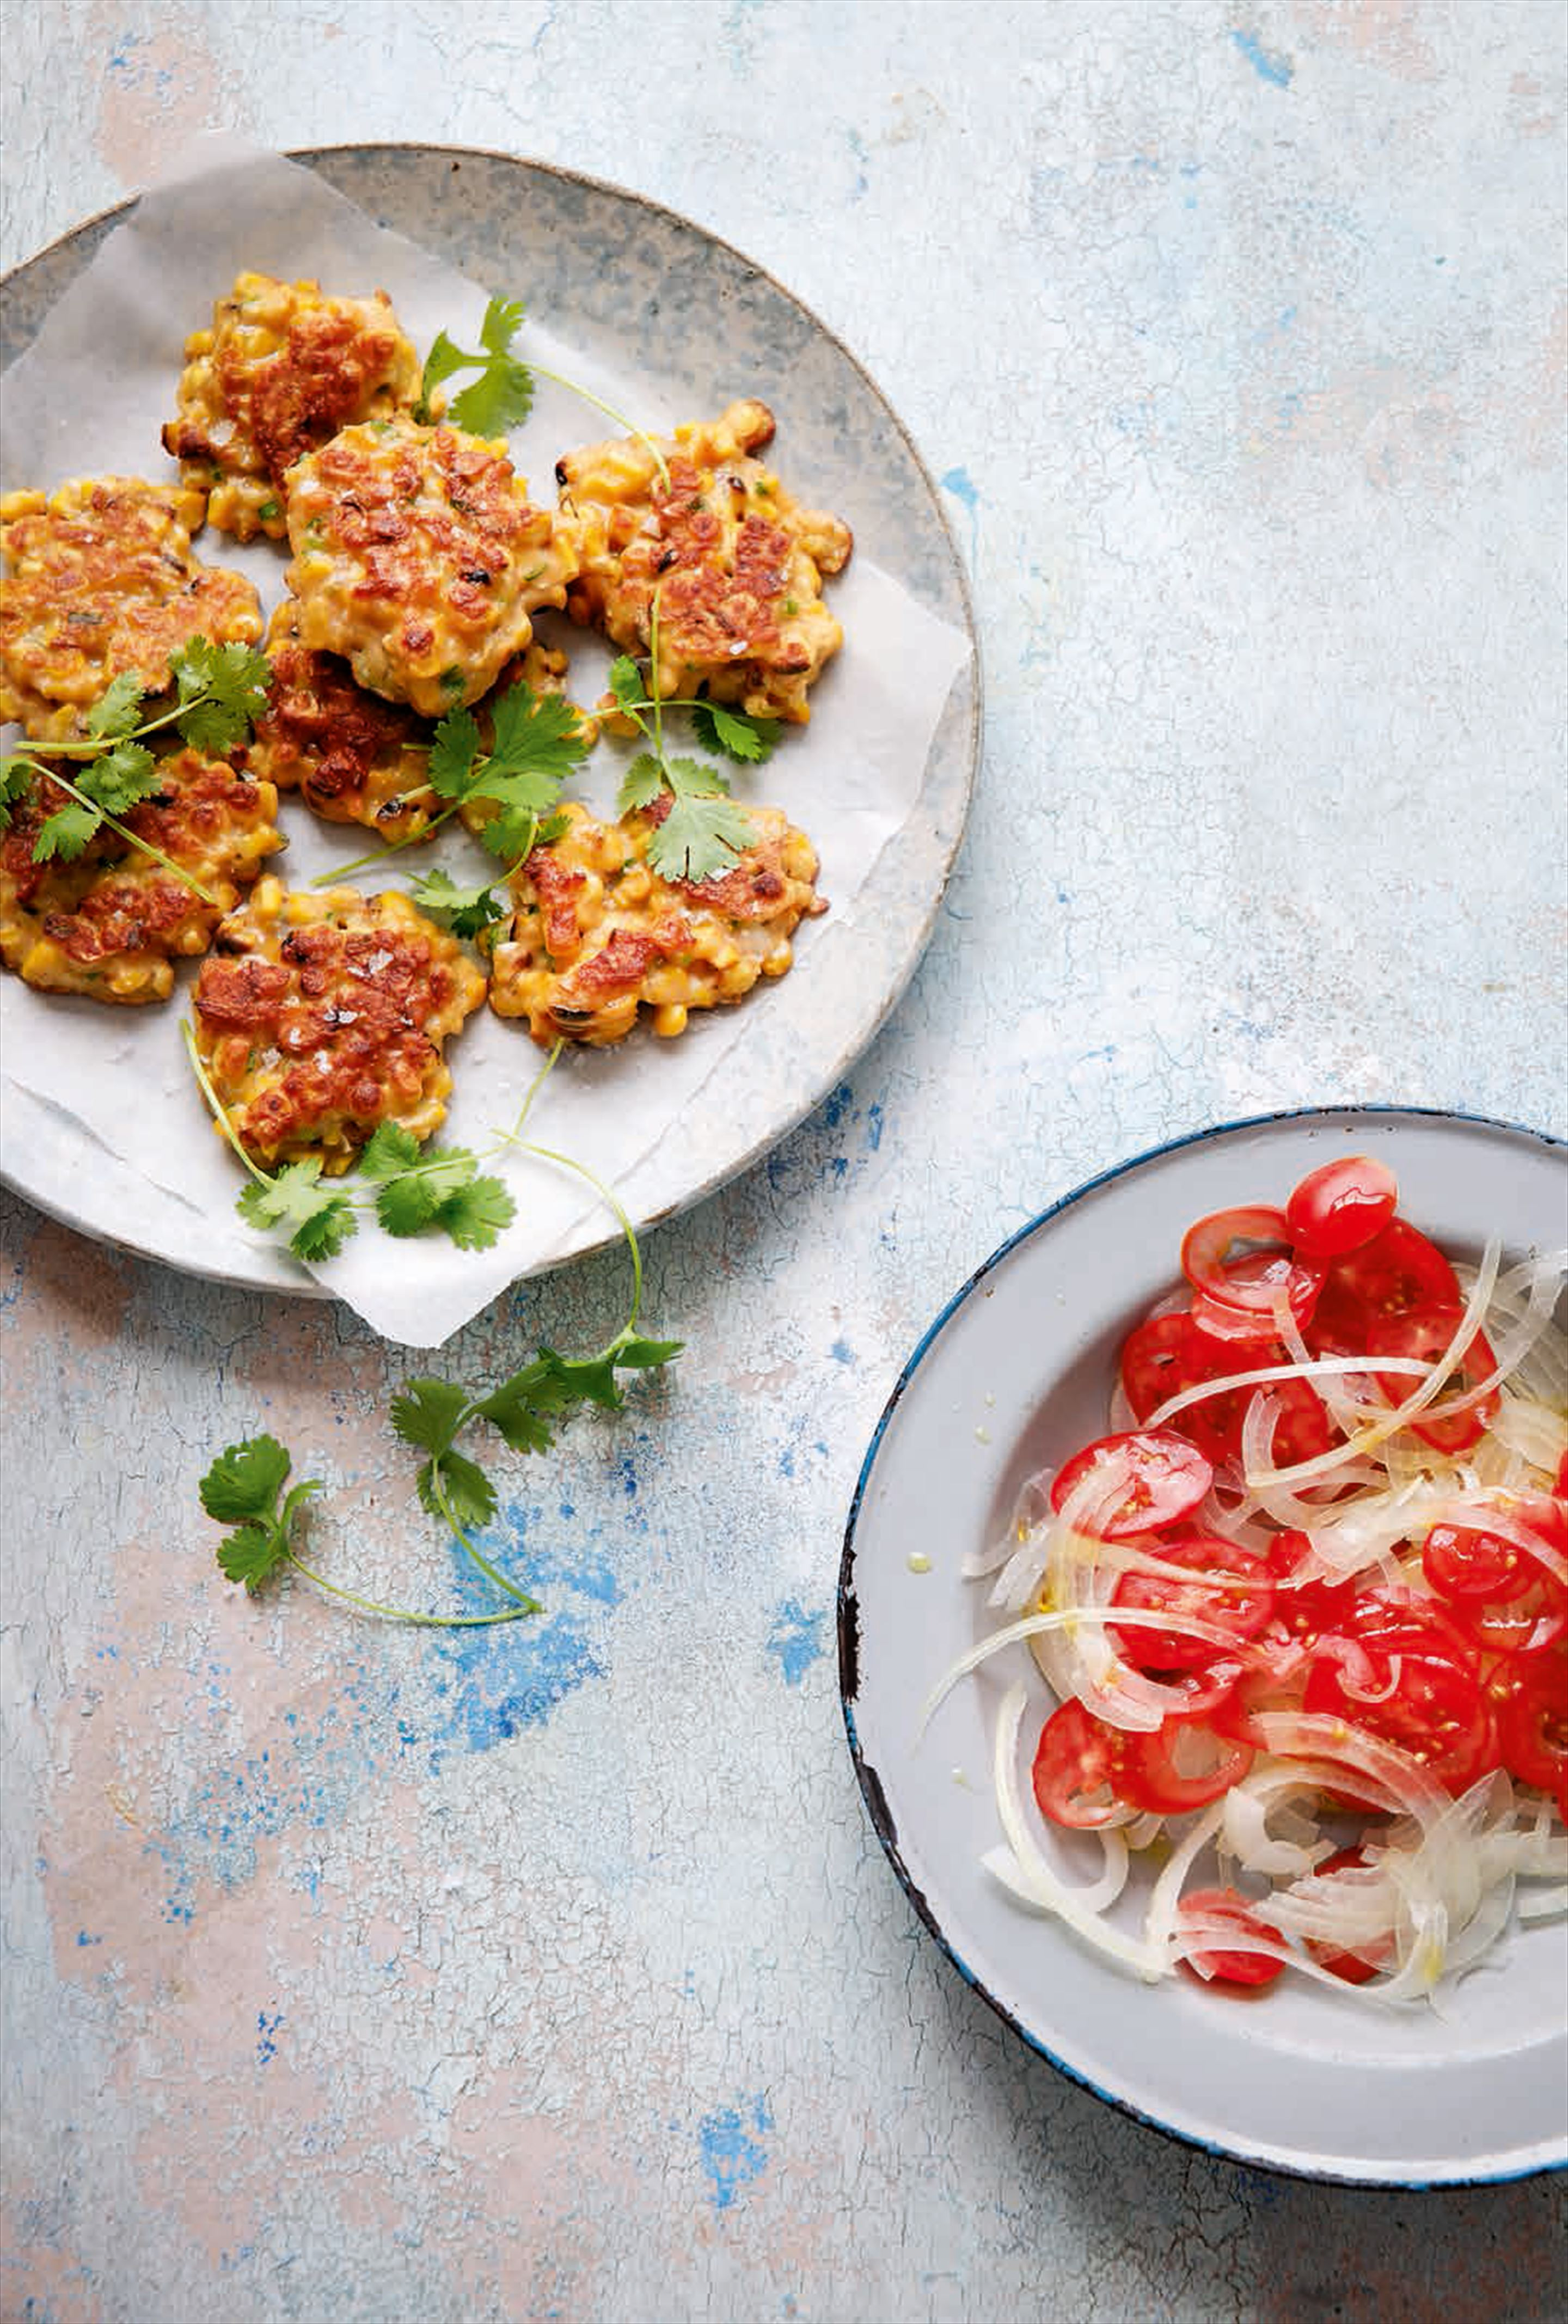 Sweetcorn fritters with tomato & onion salad